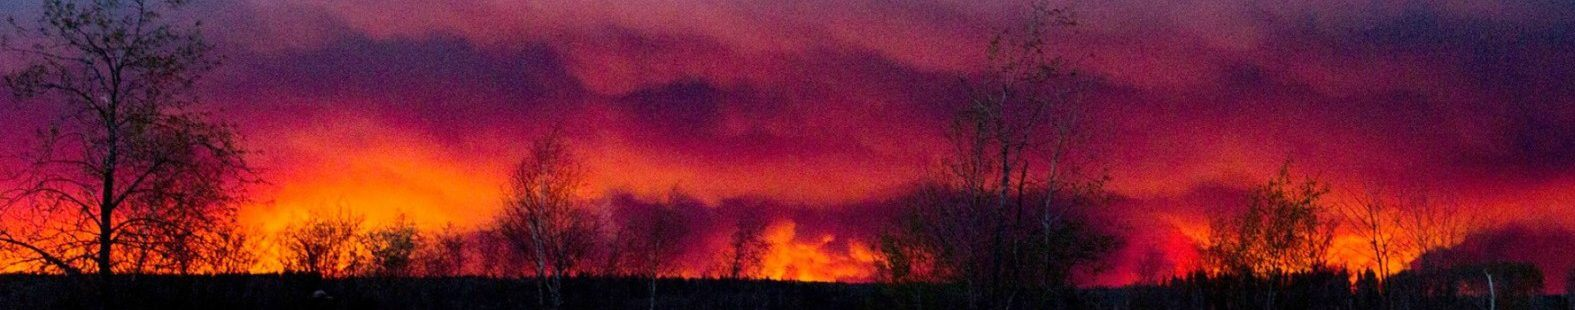 Photo showing Fort McMurray wildfire, filling the horizon with a giant plume of smoke overhead. Did anthropogenic climate change increase the chance of this extreme wildfire?